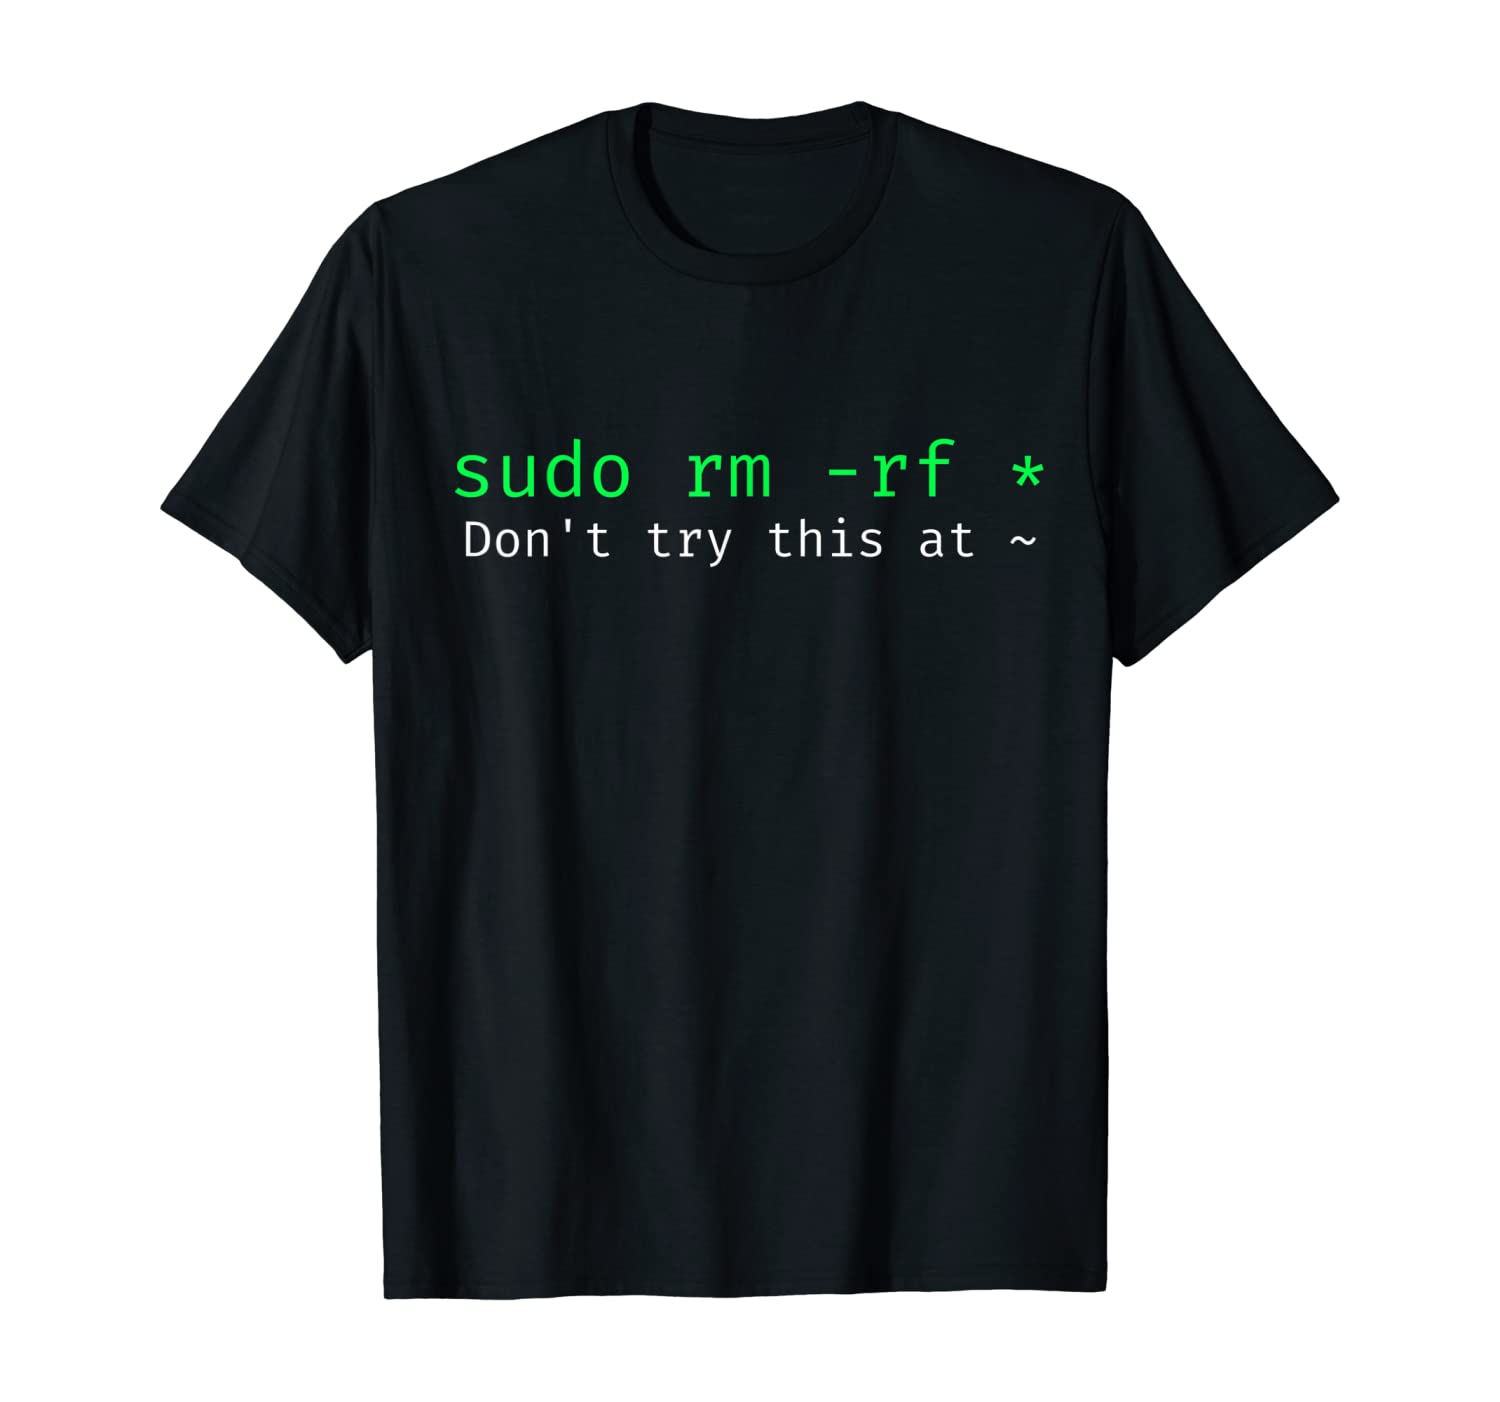 Don't try this at home Linux command sudo rm -rf - t-shirt